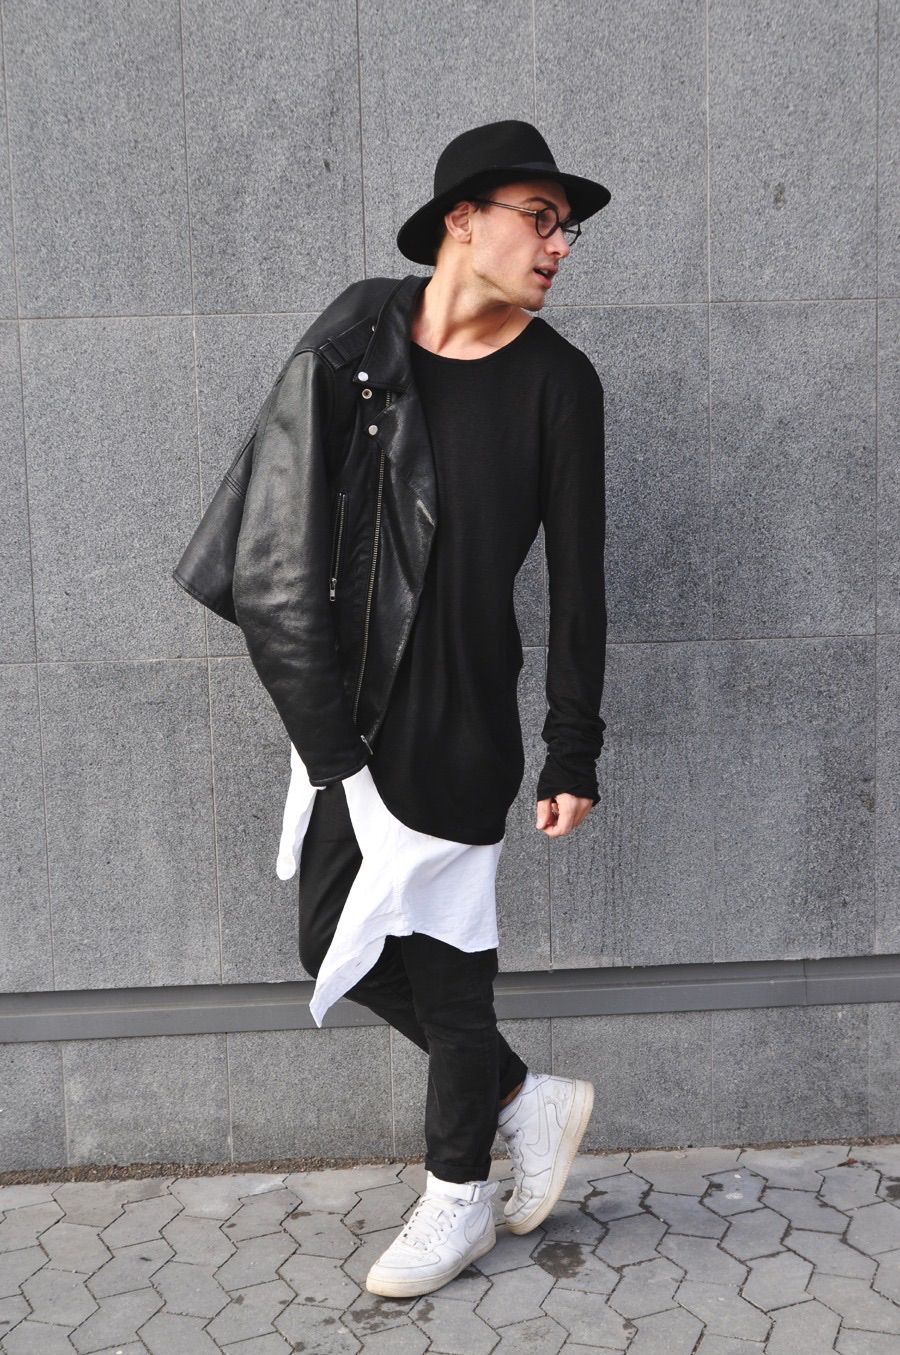 Streetstyle Inspiration for Men! #WORMLAND Men's Fashion ...